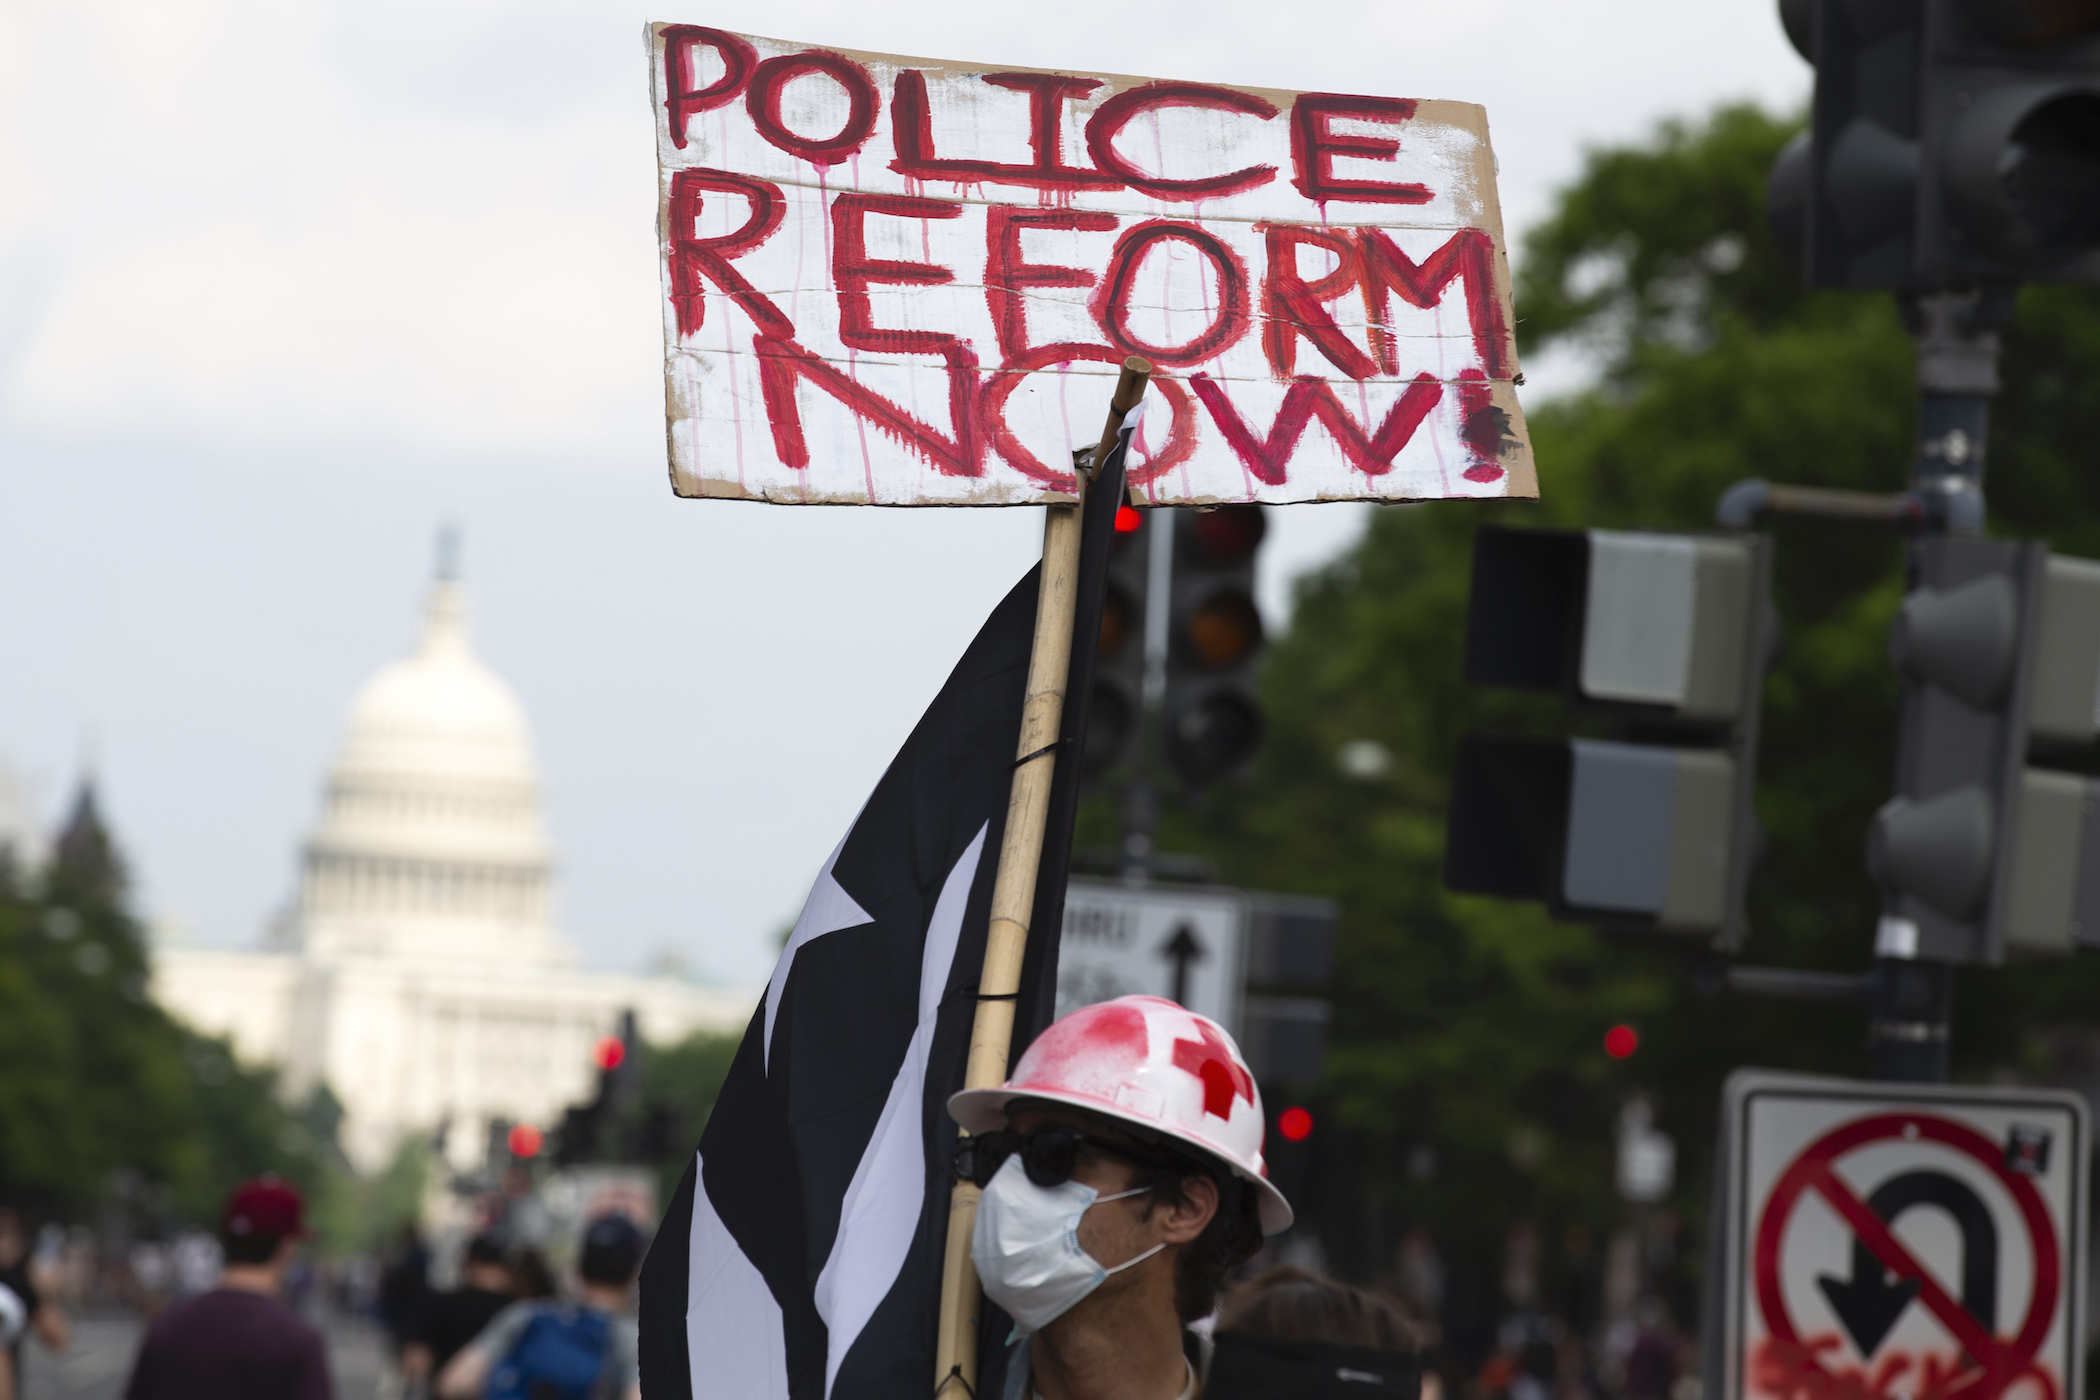 A demonstrator holds a placard during a march against racism and police brutality, in Washington, D.C. on June 6, 2020.